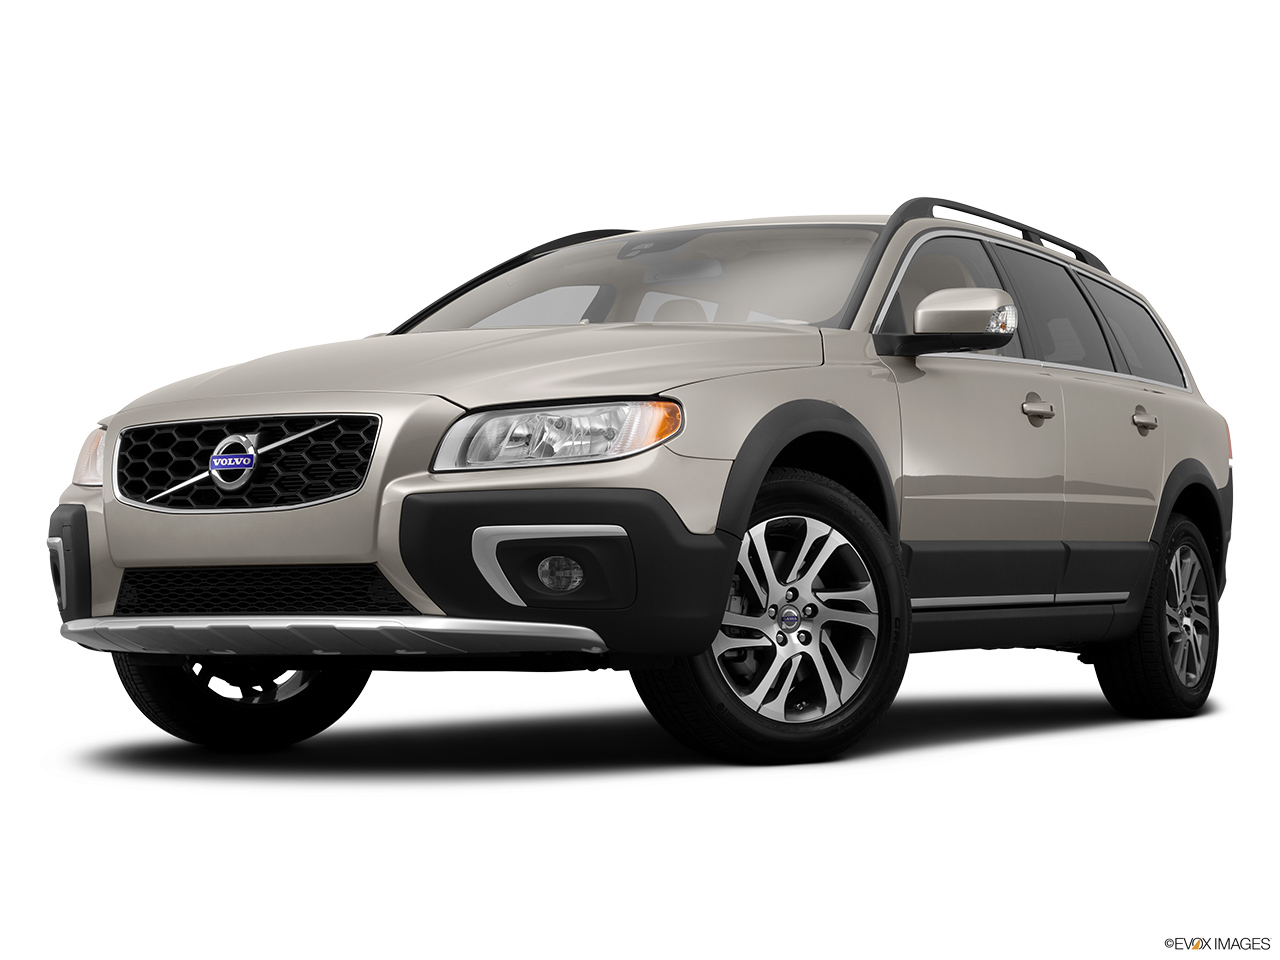 2014 Volvo XC70 3.2 AWD Premier Plus Front angle view, low wide perspective.